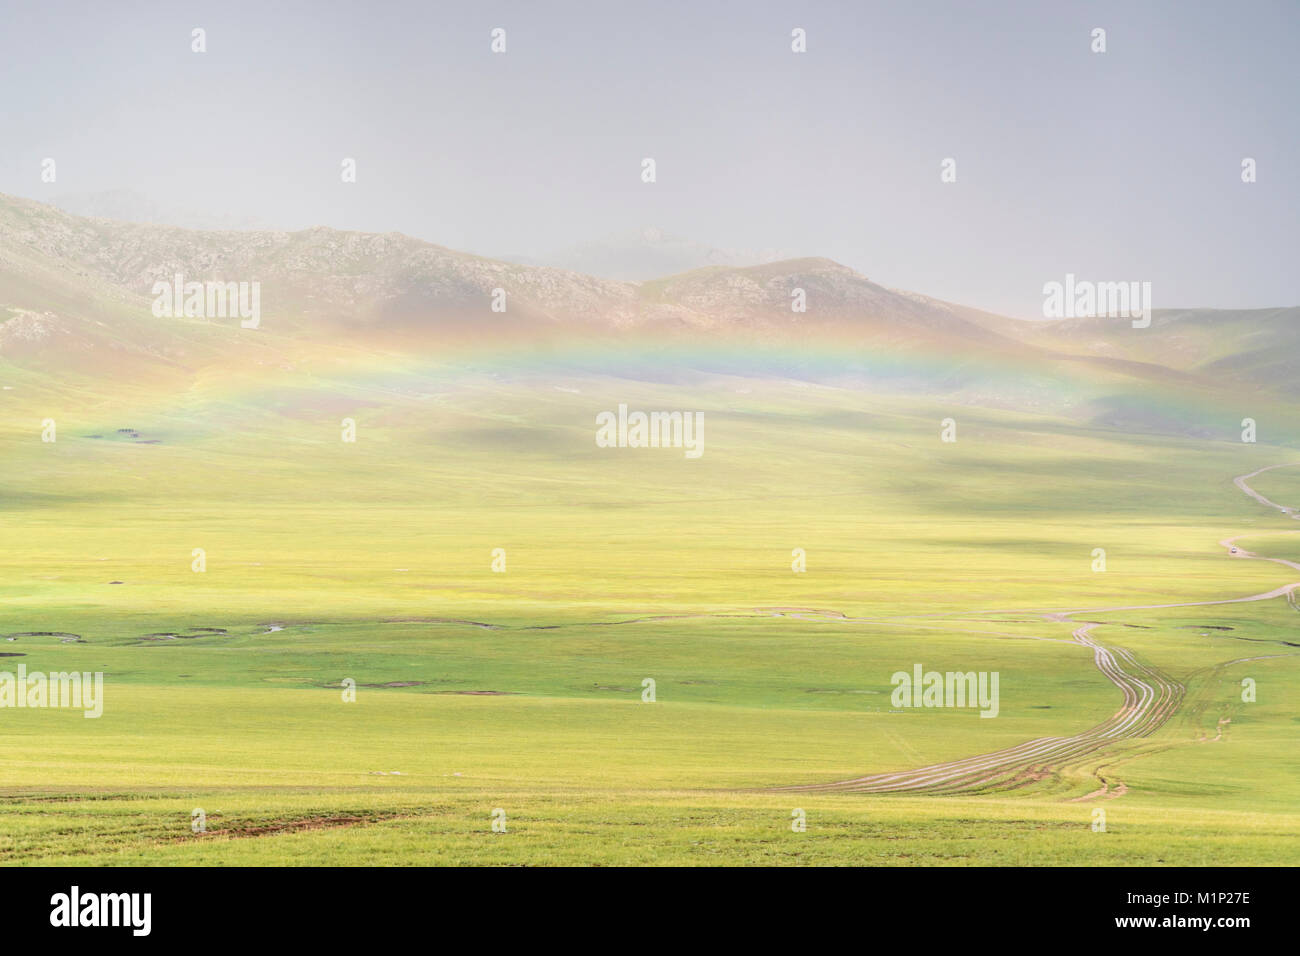 Rainbow over the green Mongolian steppe, Ovorkhangai province, Mongolia, Central Asia, Asia - Stock Image